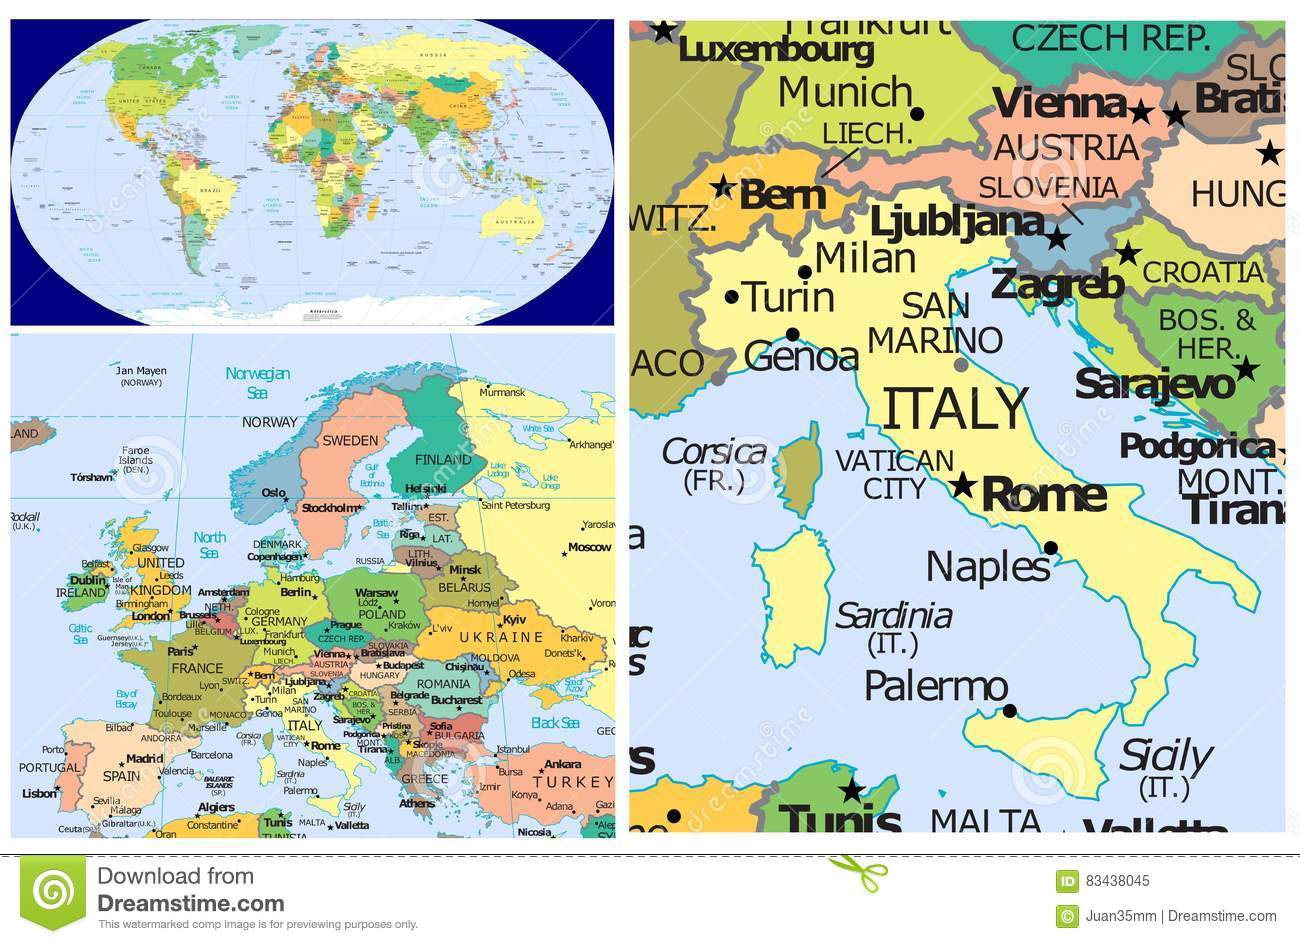 Italy On Map Of World.Italy World Stock Illustration Illustration Of Asia 83438045